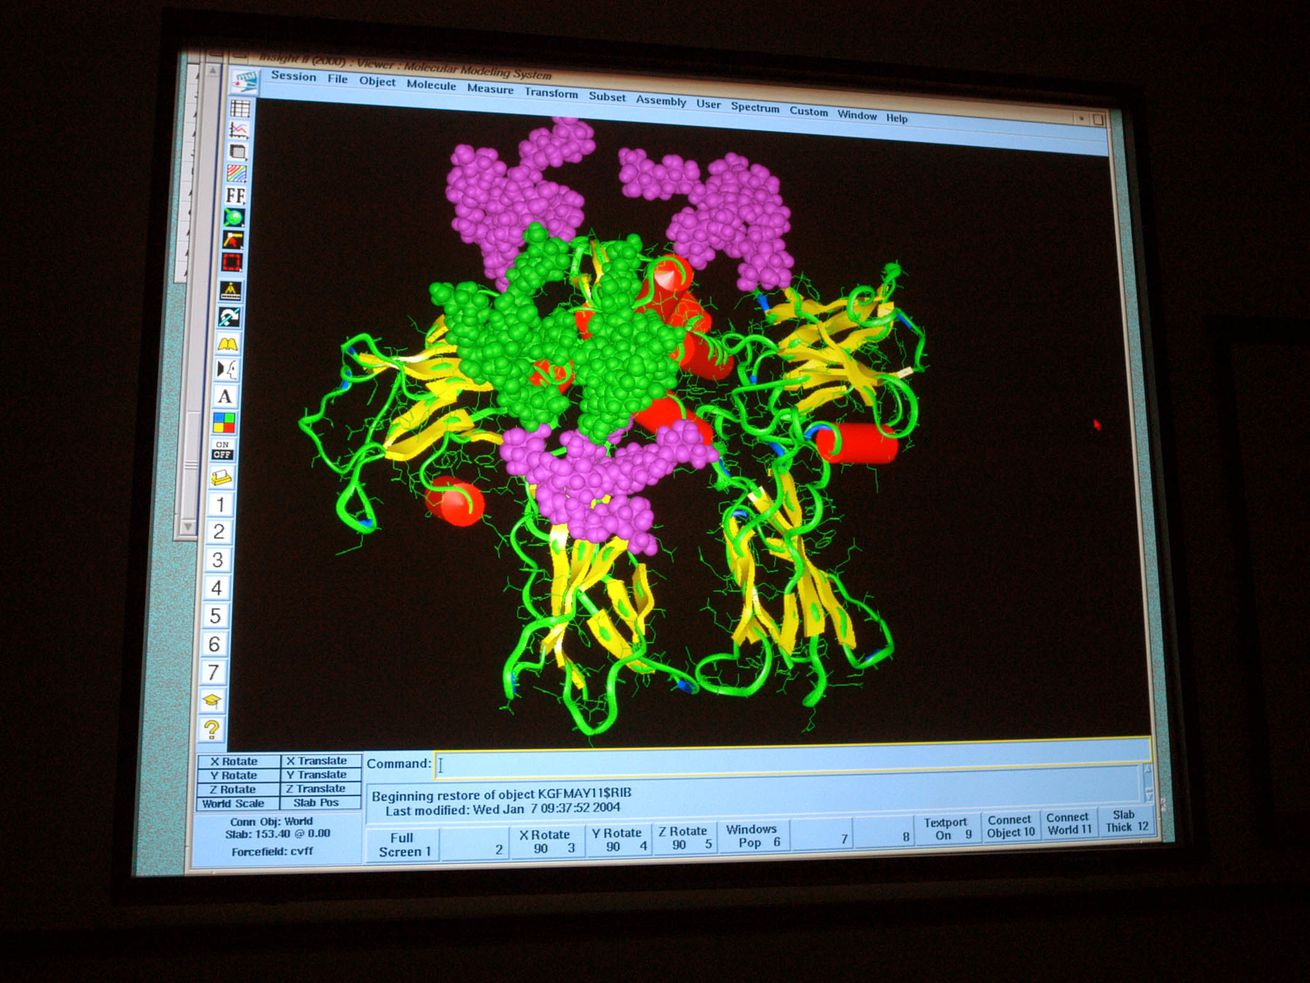 A protein bound to a receptor is shown in the Molecular Graphics Lab in California.